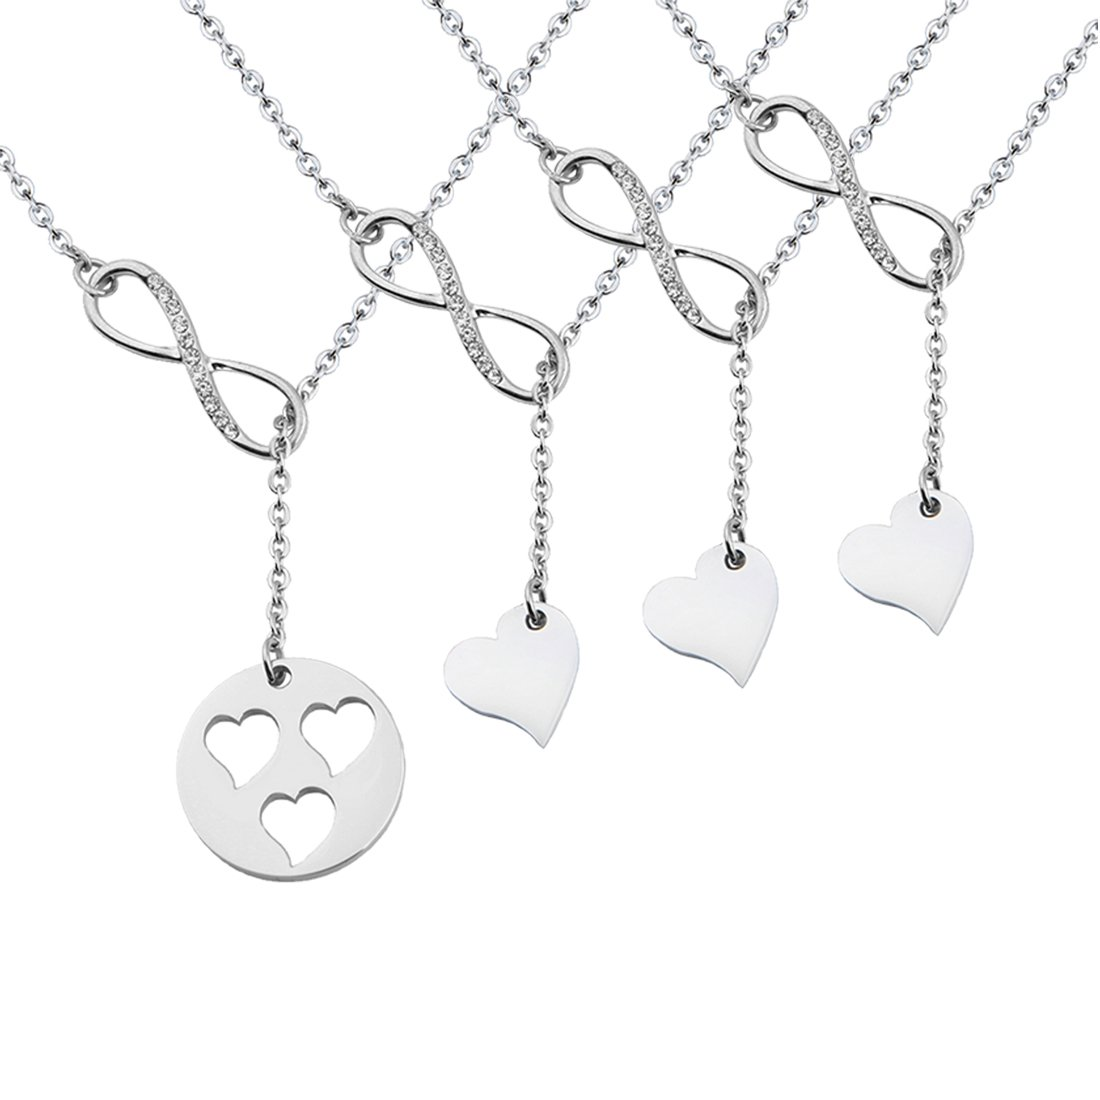 Zuo Bao Mother and Daughters Necklace Set Mother Daughter Lariat Y Necklace Y-necklace-1